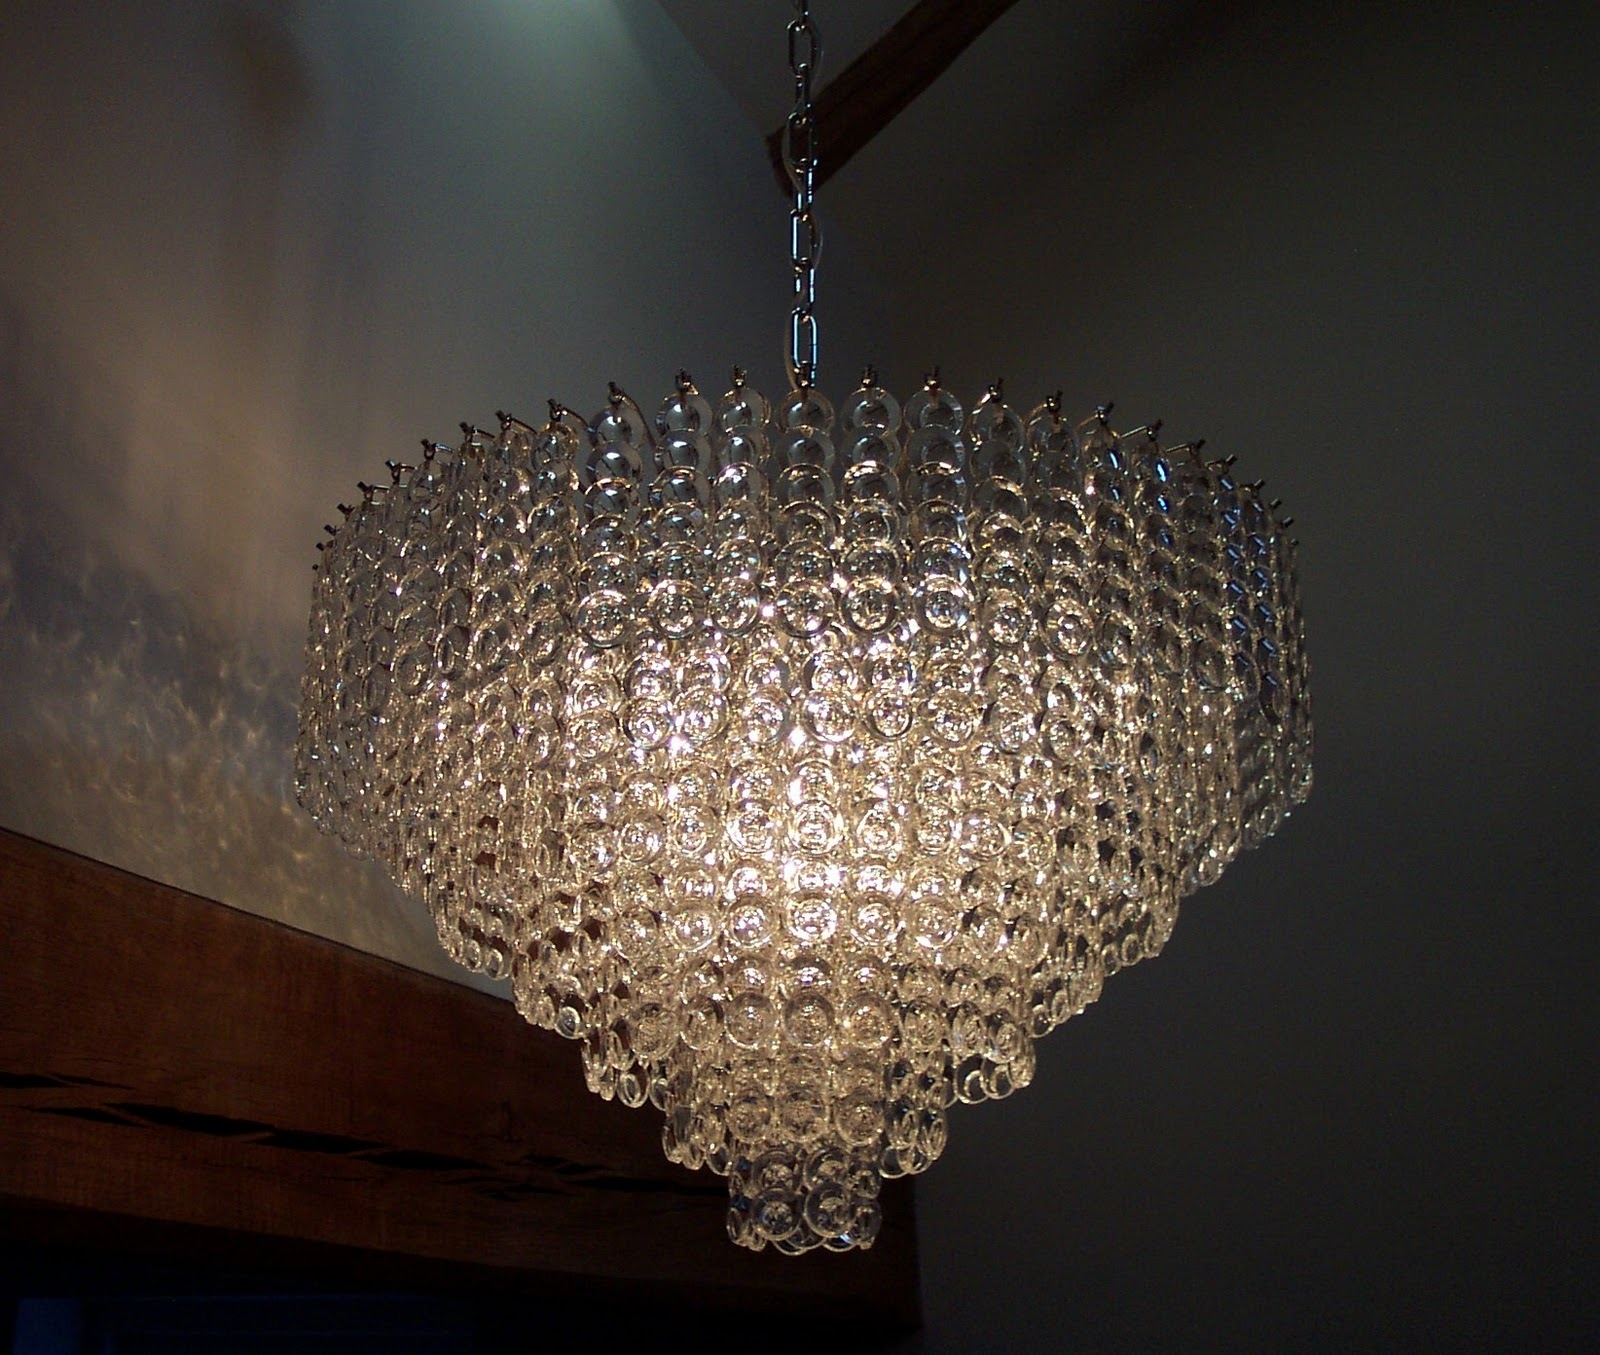 20thcenturycollectablescouk Regarding Italian Chandeliers Contemporary (#1 of 12)